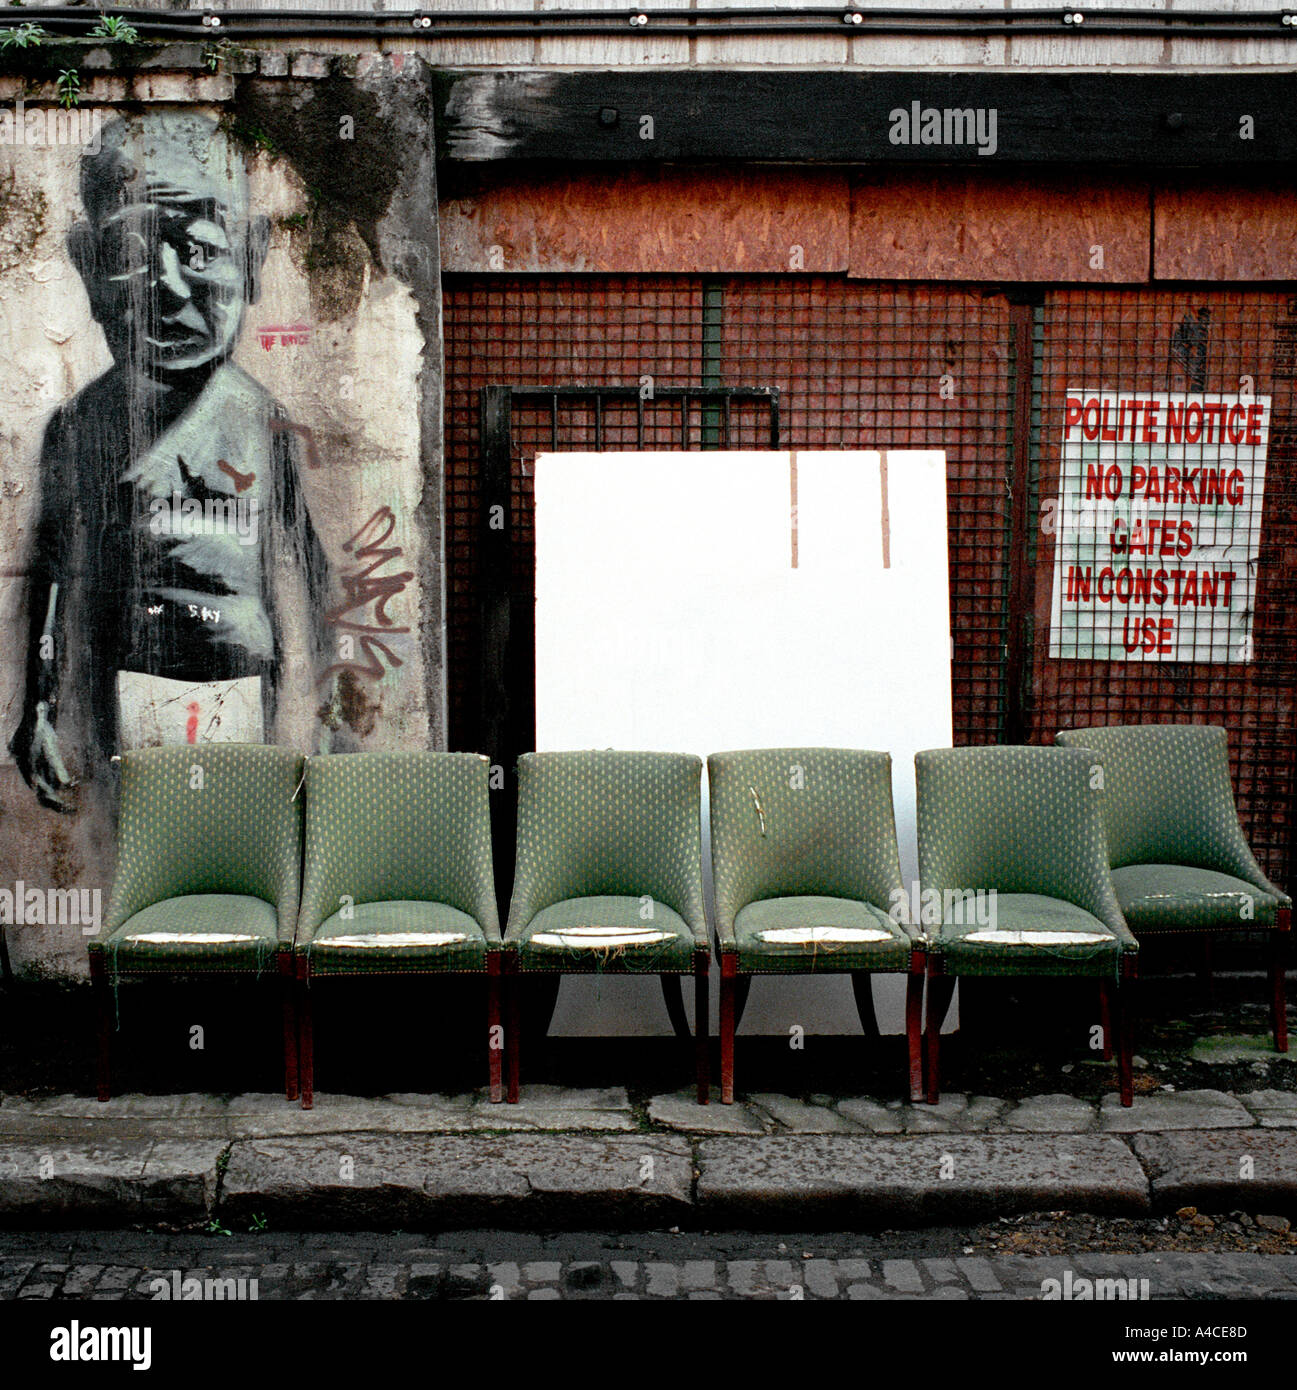 Stock Photo   Used Furniture Dealers Street Display Off Brick Lane In  Londons East End With Wall Graffiti Mural Stencil Possibly By Banksy